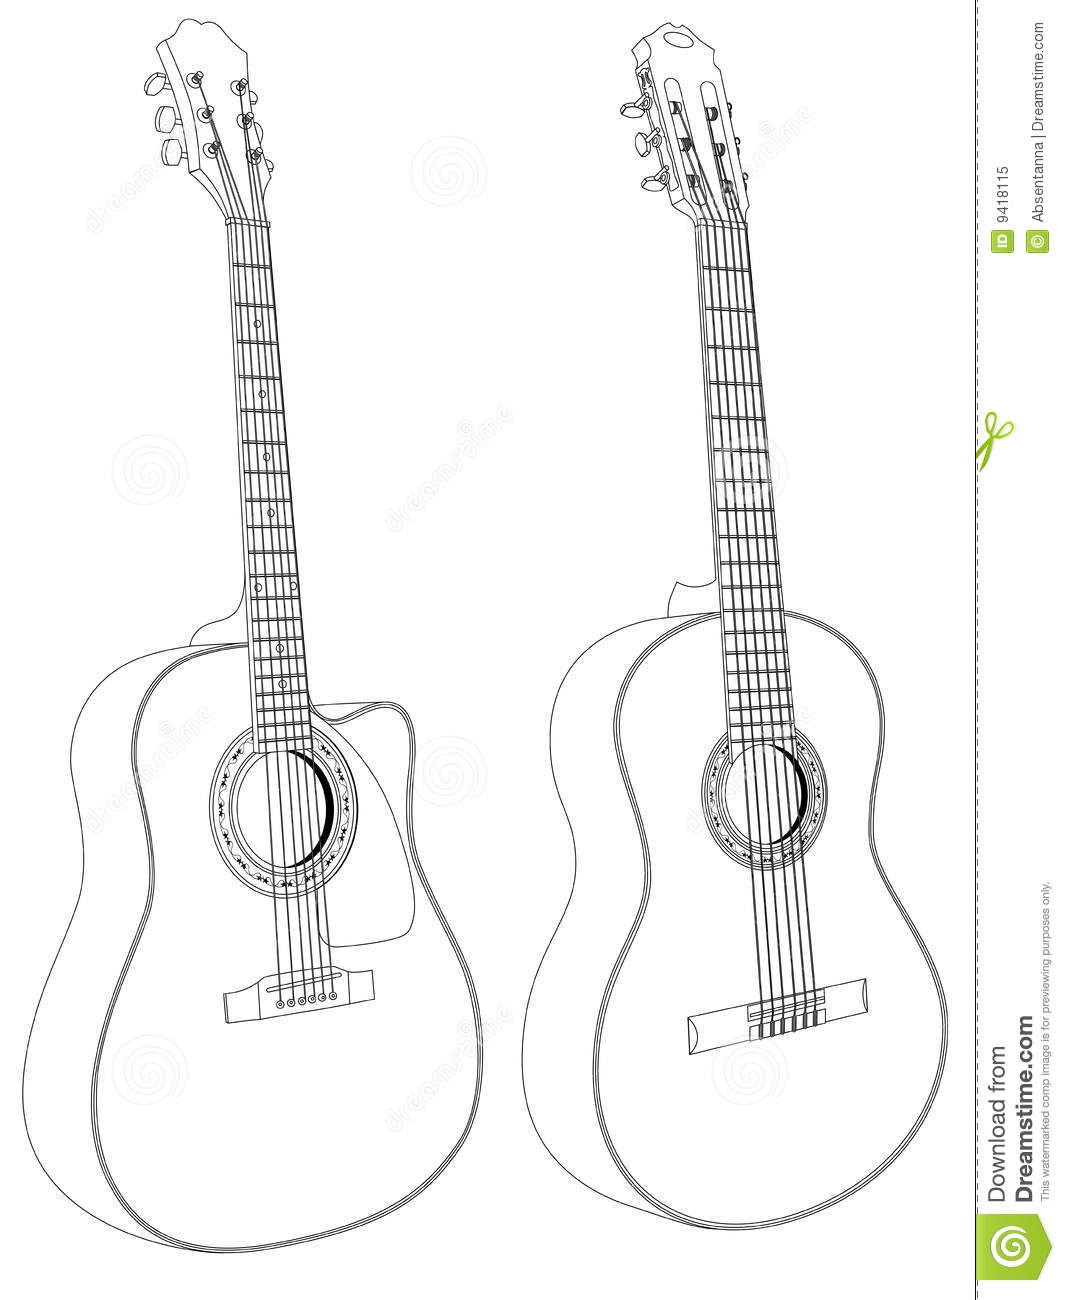 Acoustic Guitars Royalty Free Stock Photo